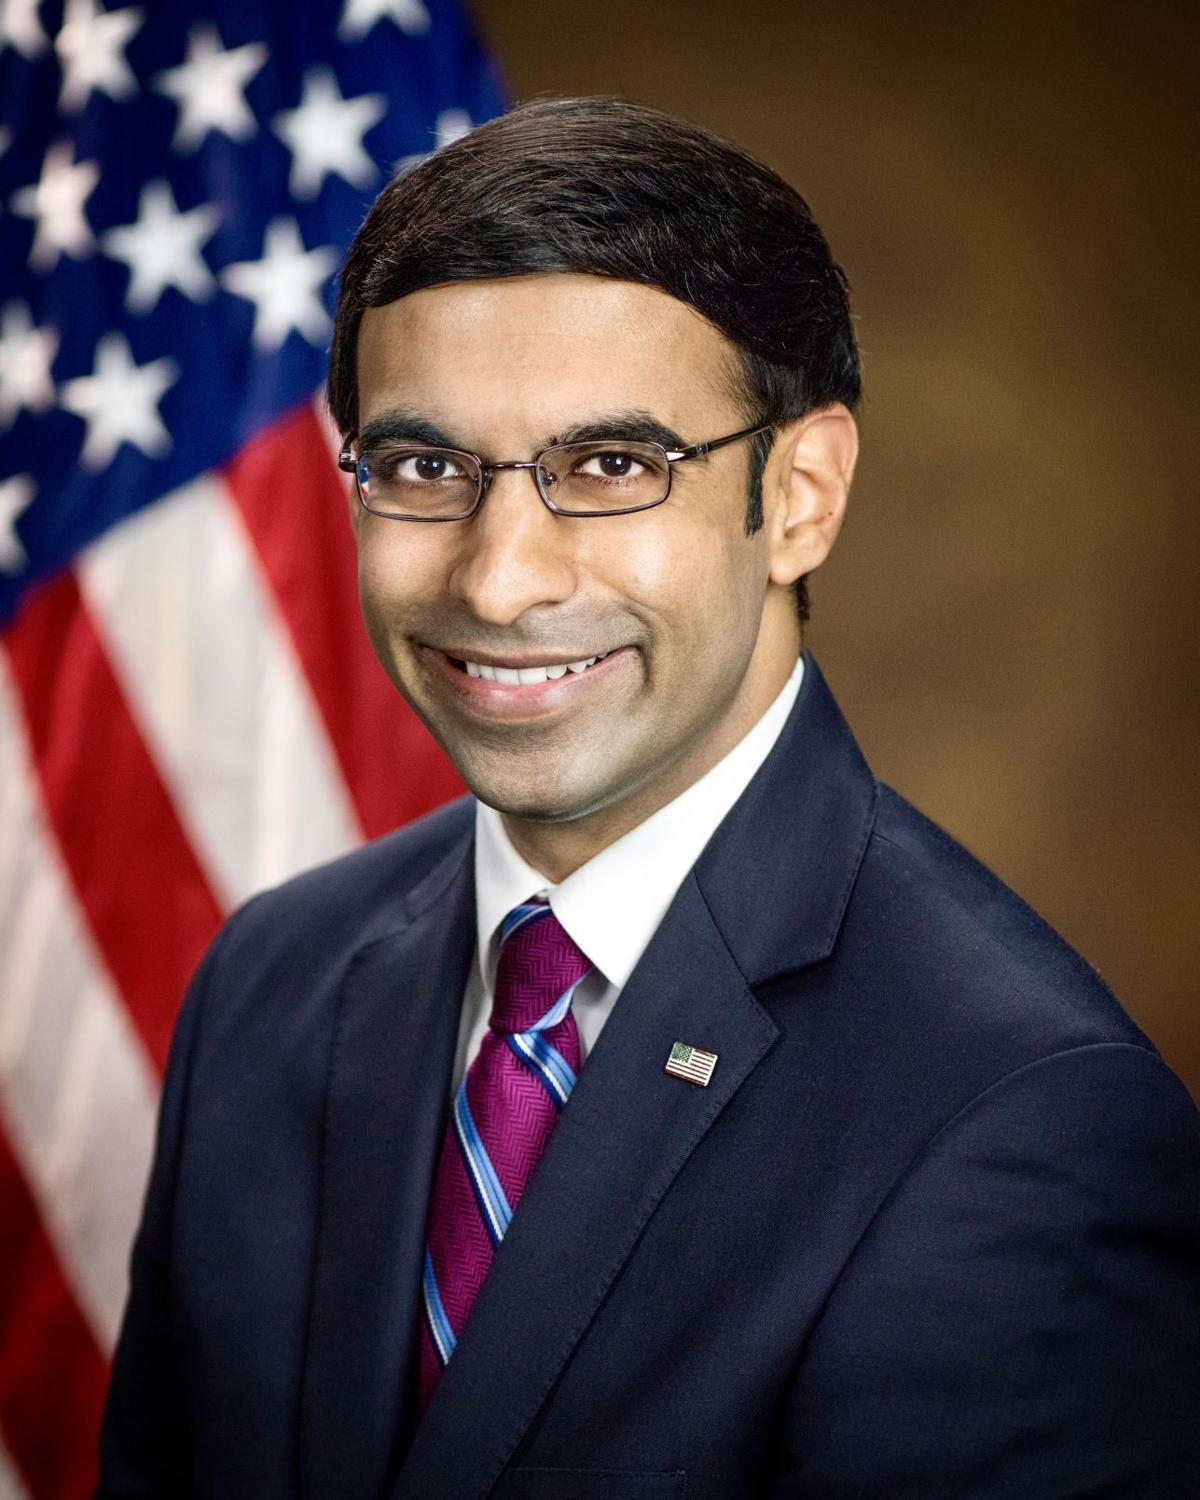 Raj Parekh, acting U.S. Attorney for the Eastern District of Virginia